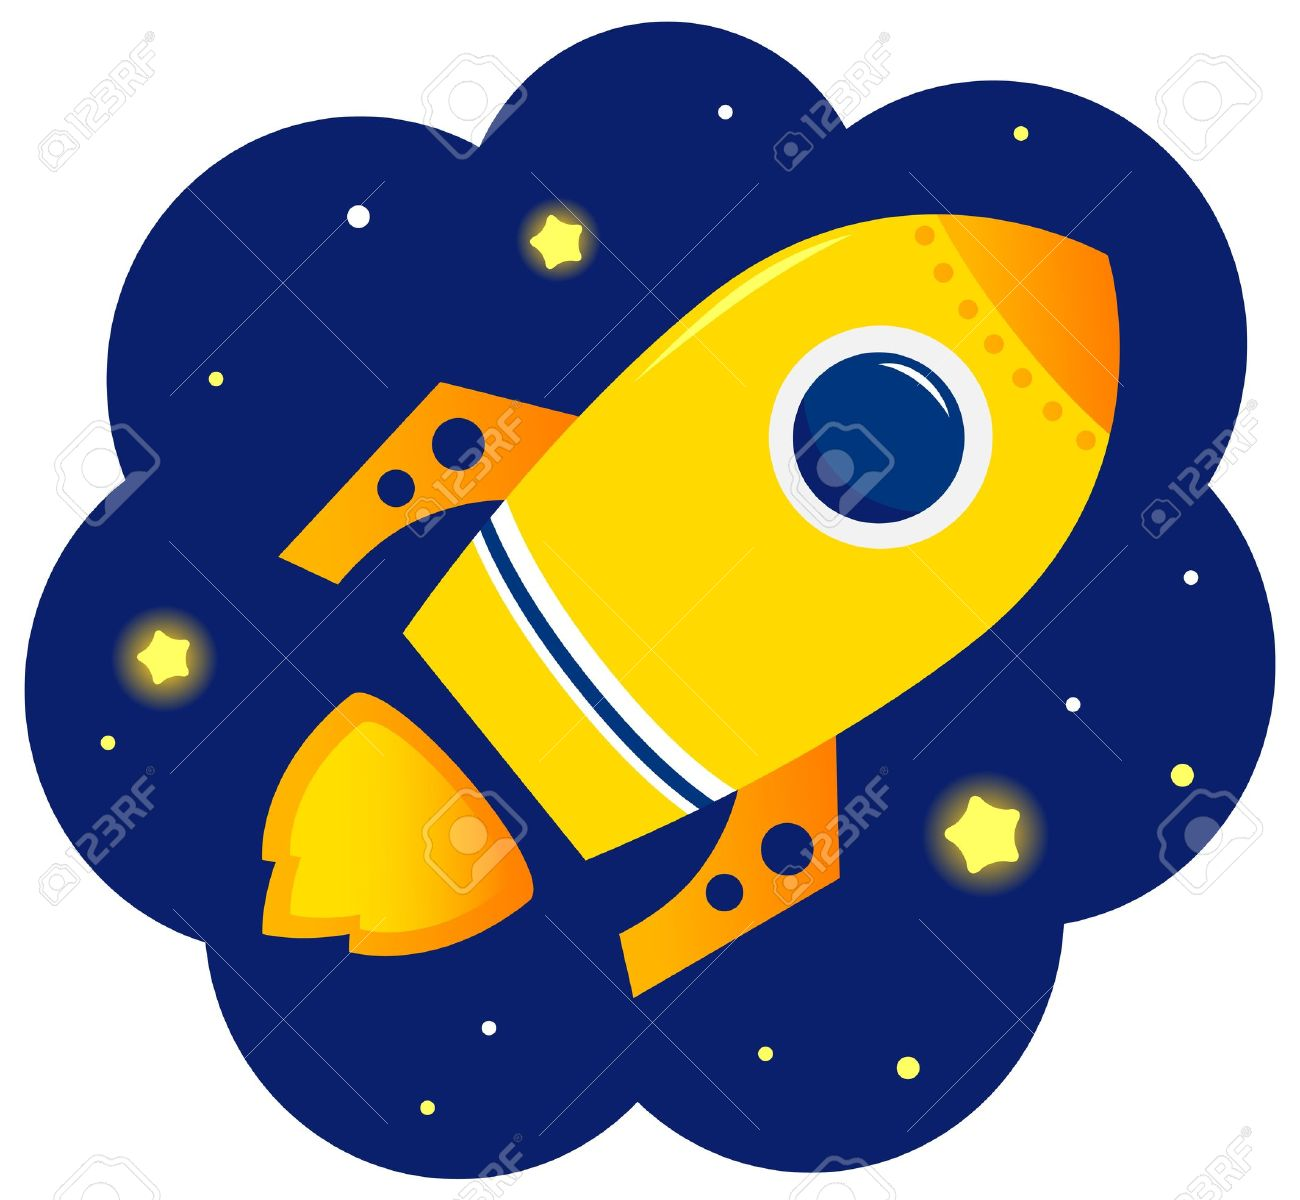 Yellow Vector Rocket In Space. Cartoon Illustration Royalty Free.